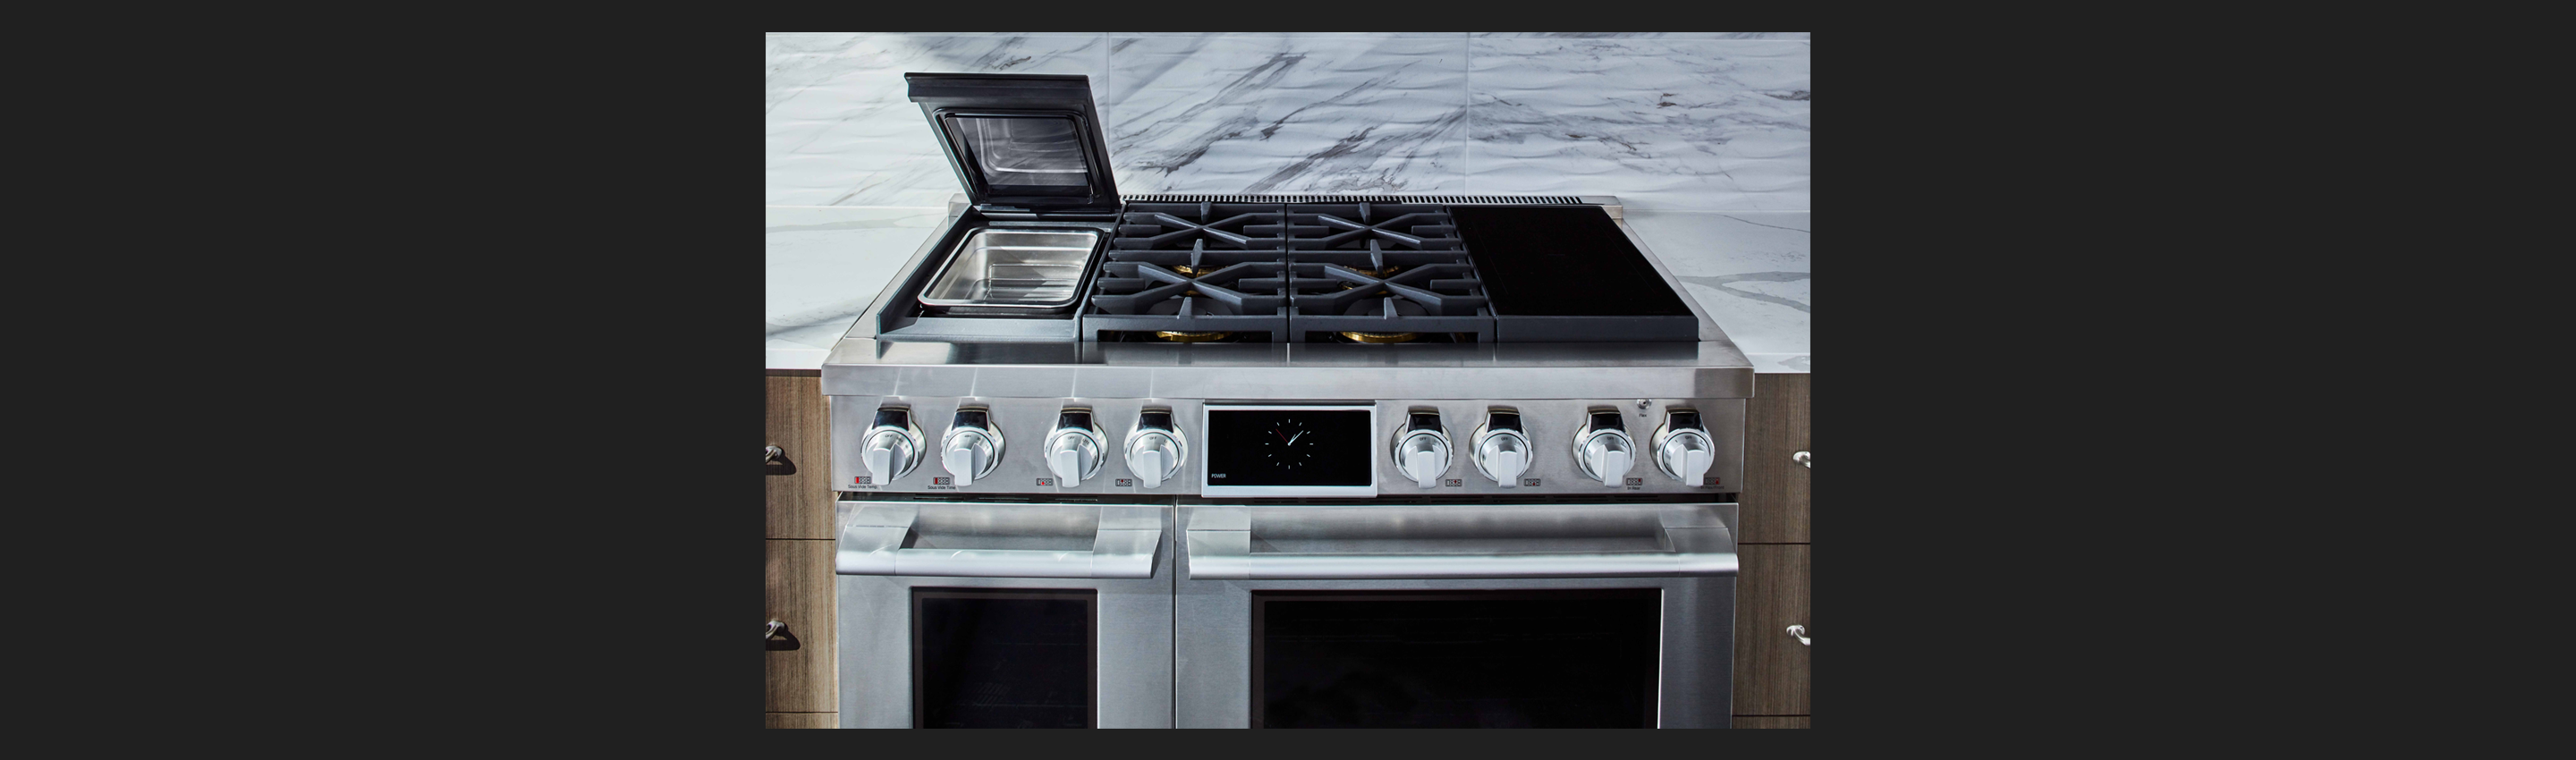 "48"" Range Dual Fuel, Built-in Sous Vide, Gas & Induction"